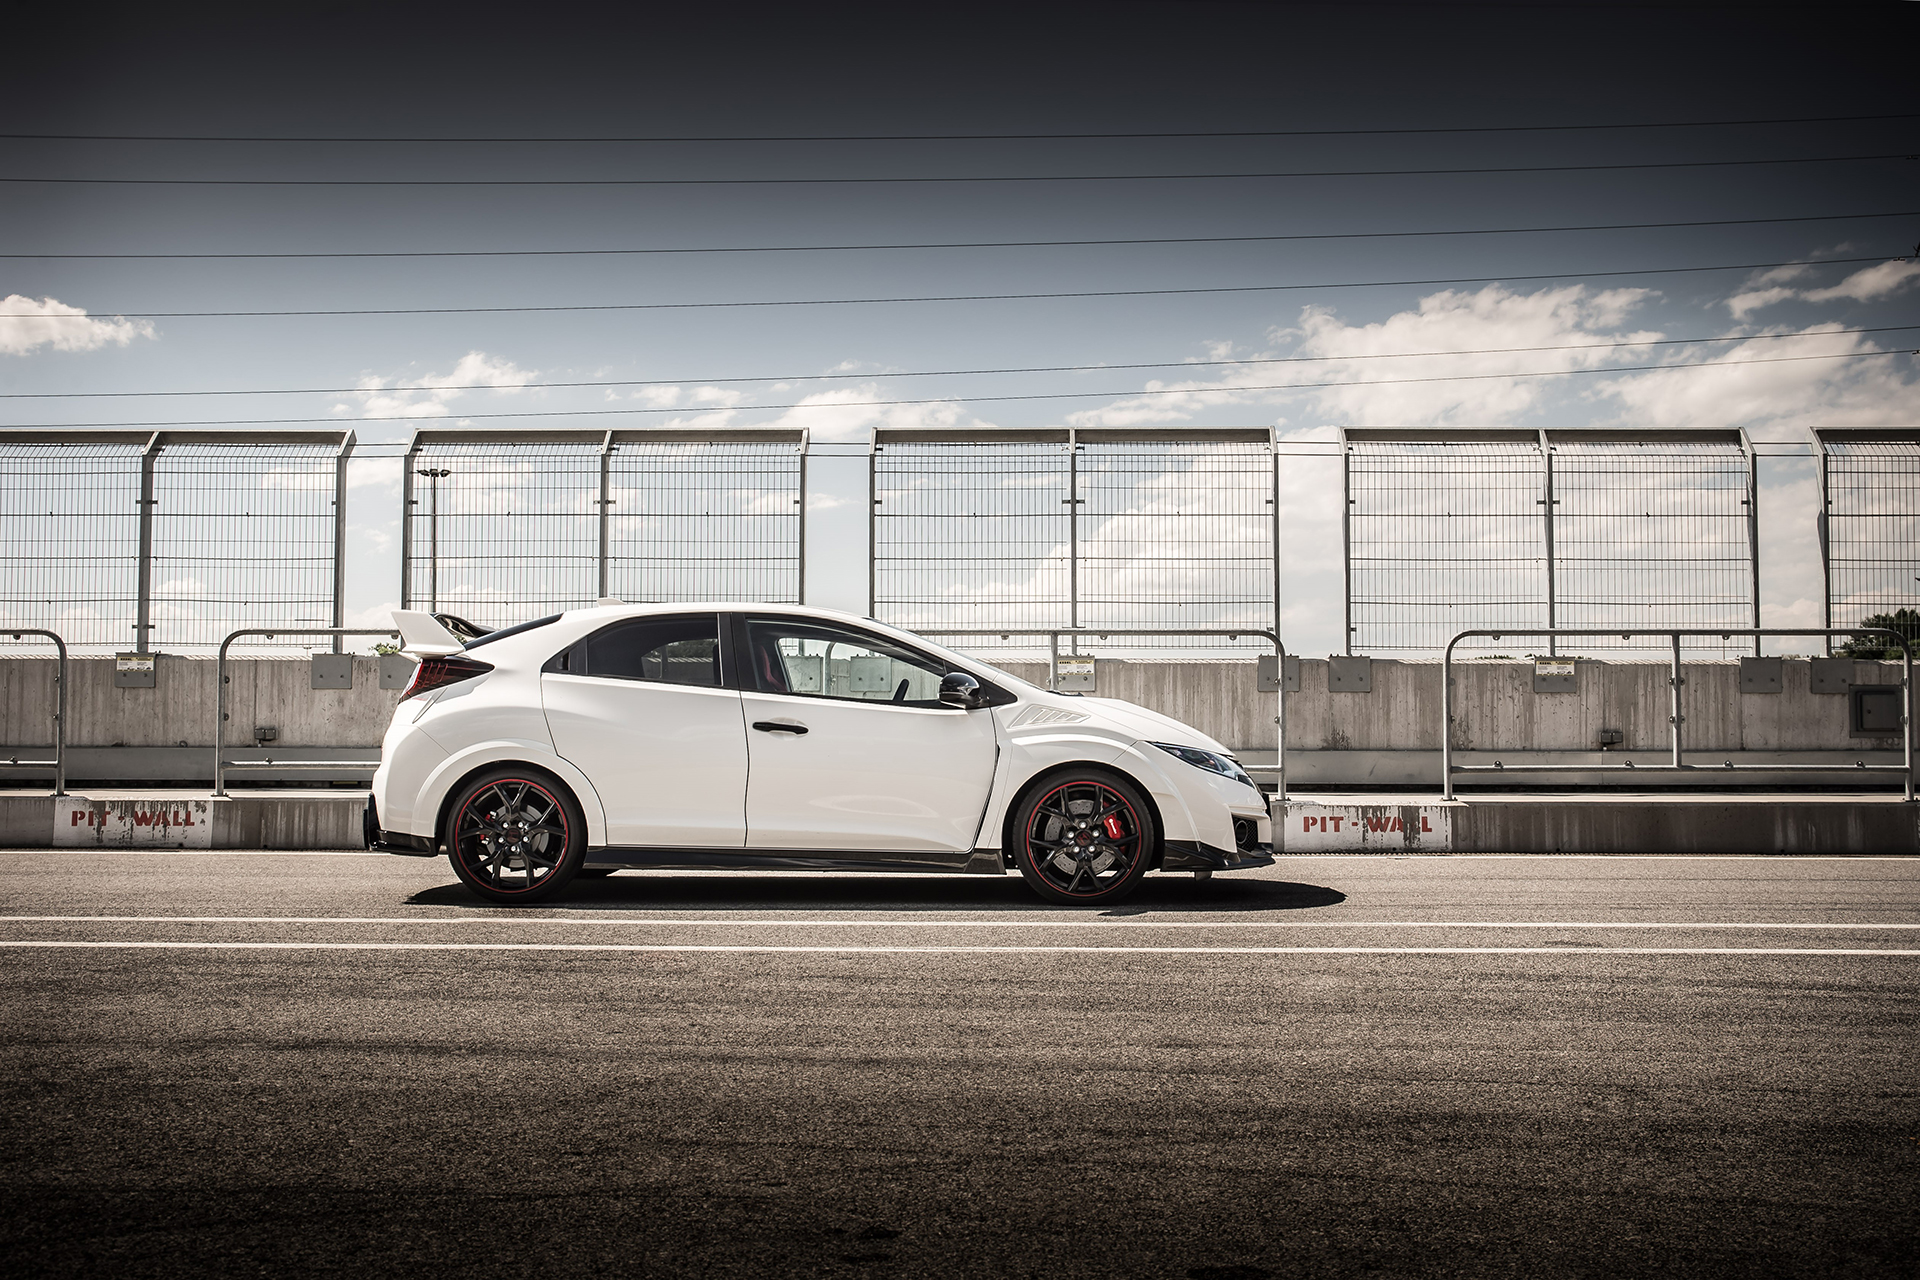 Honda Civic Type R - 2015 - side-face / profil - track / circuit